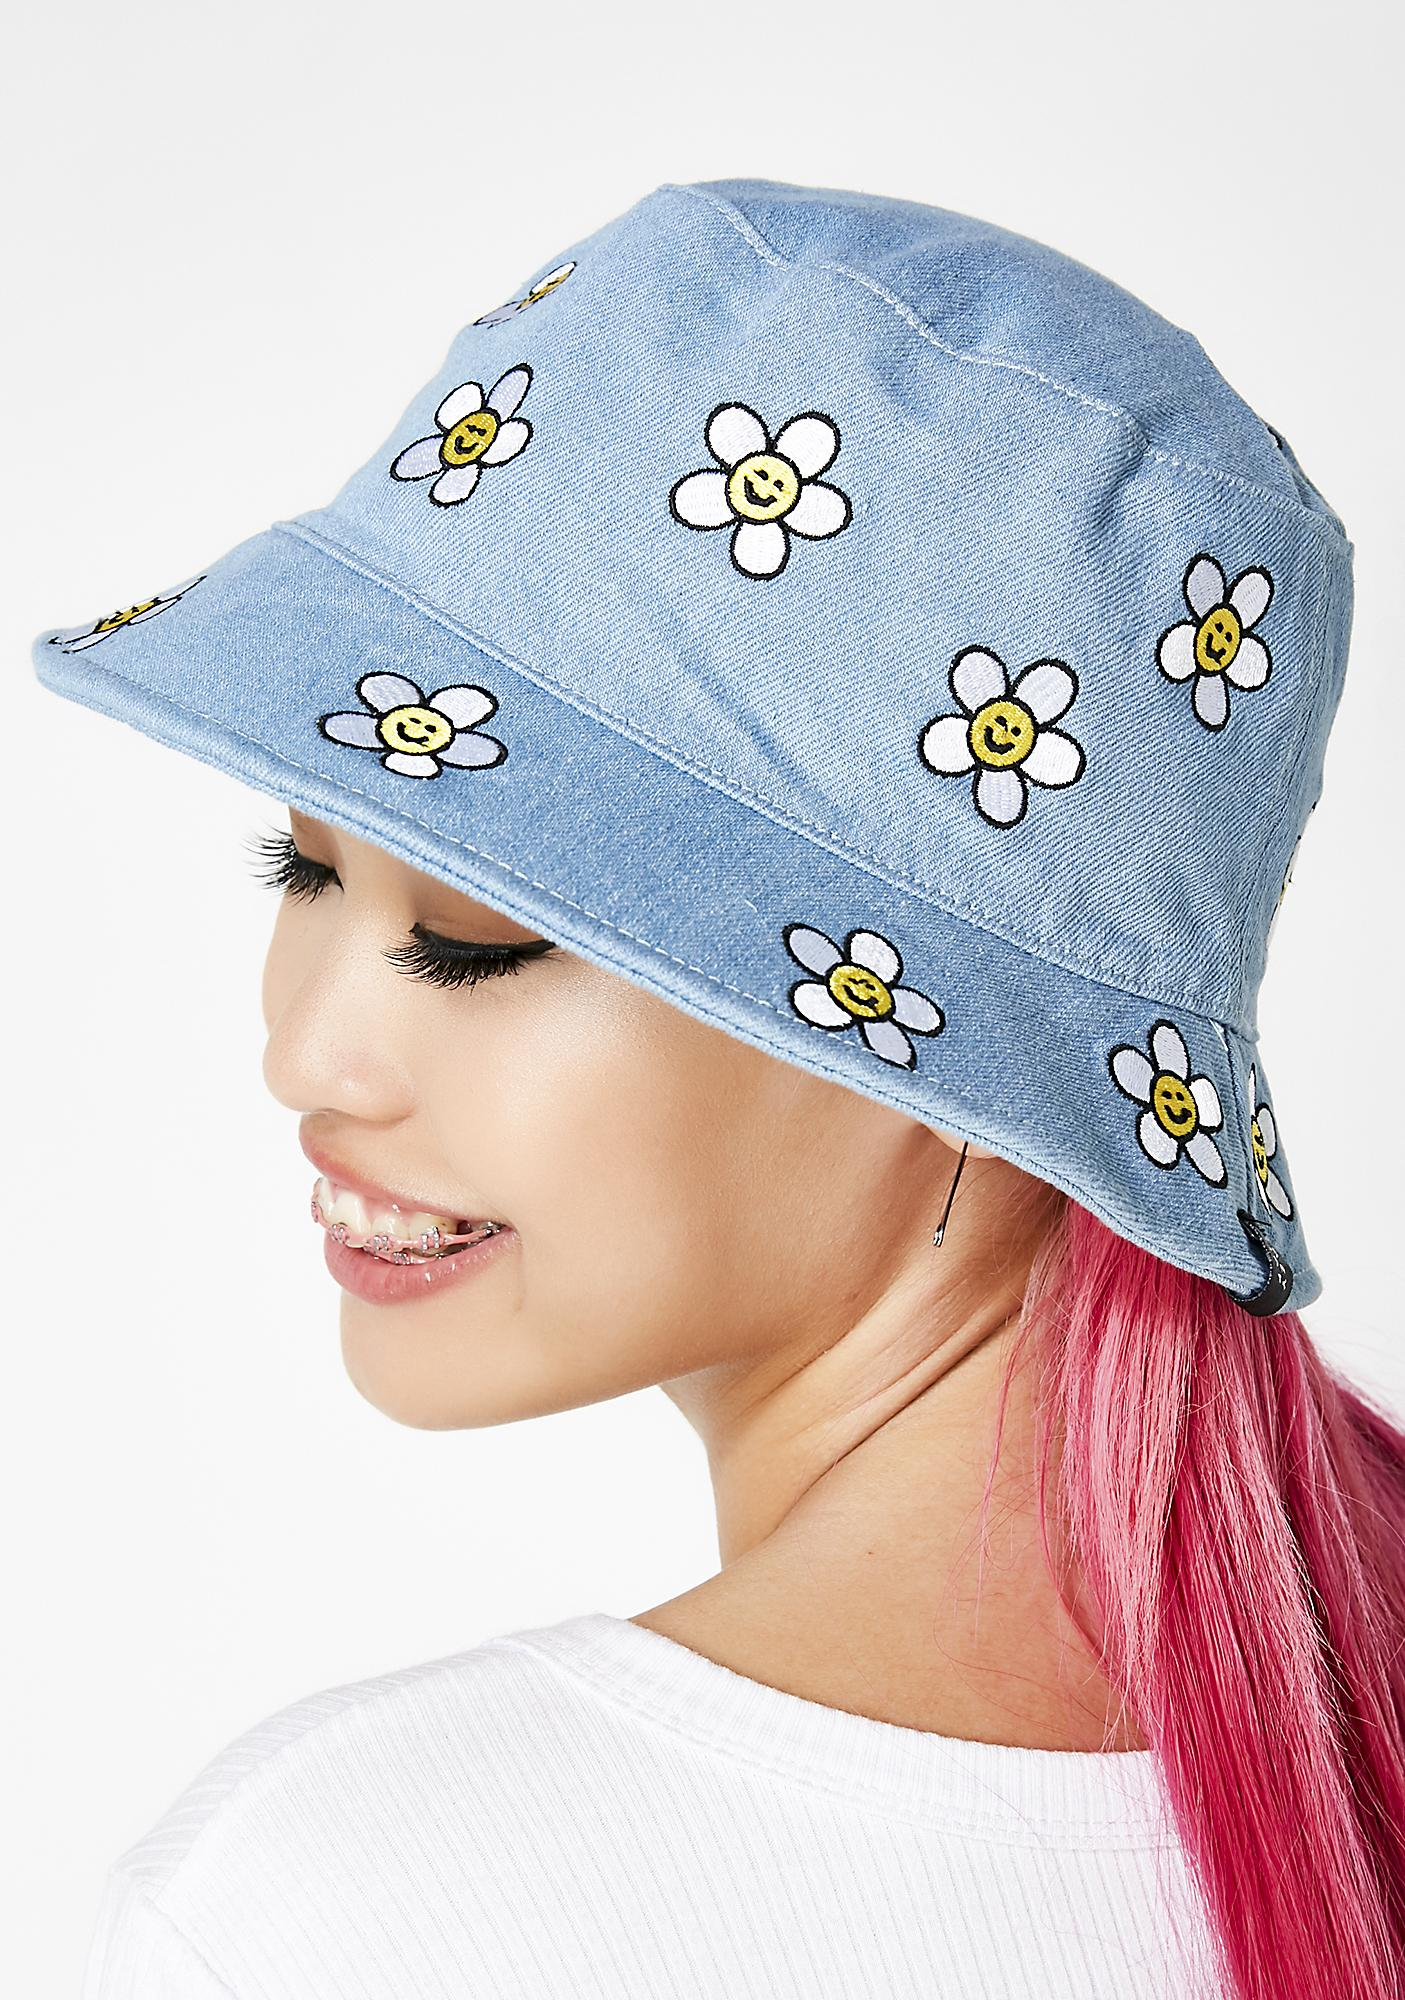 ddec7234a1bf8 ... Lazy Oaf Denim Daisy Bucket Hat